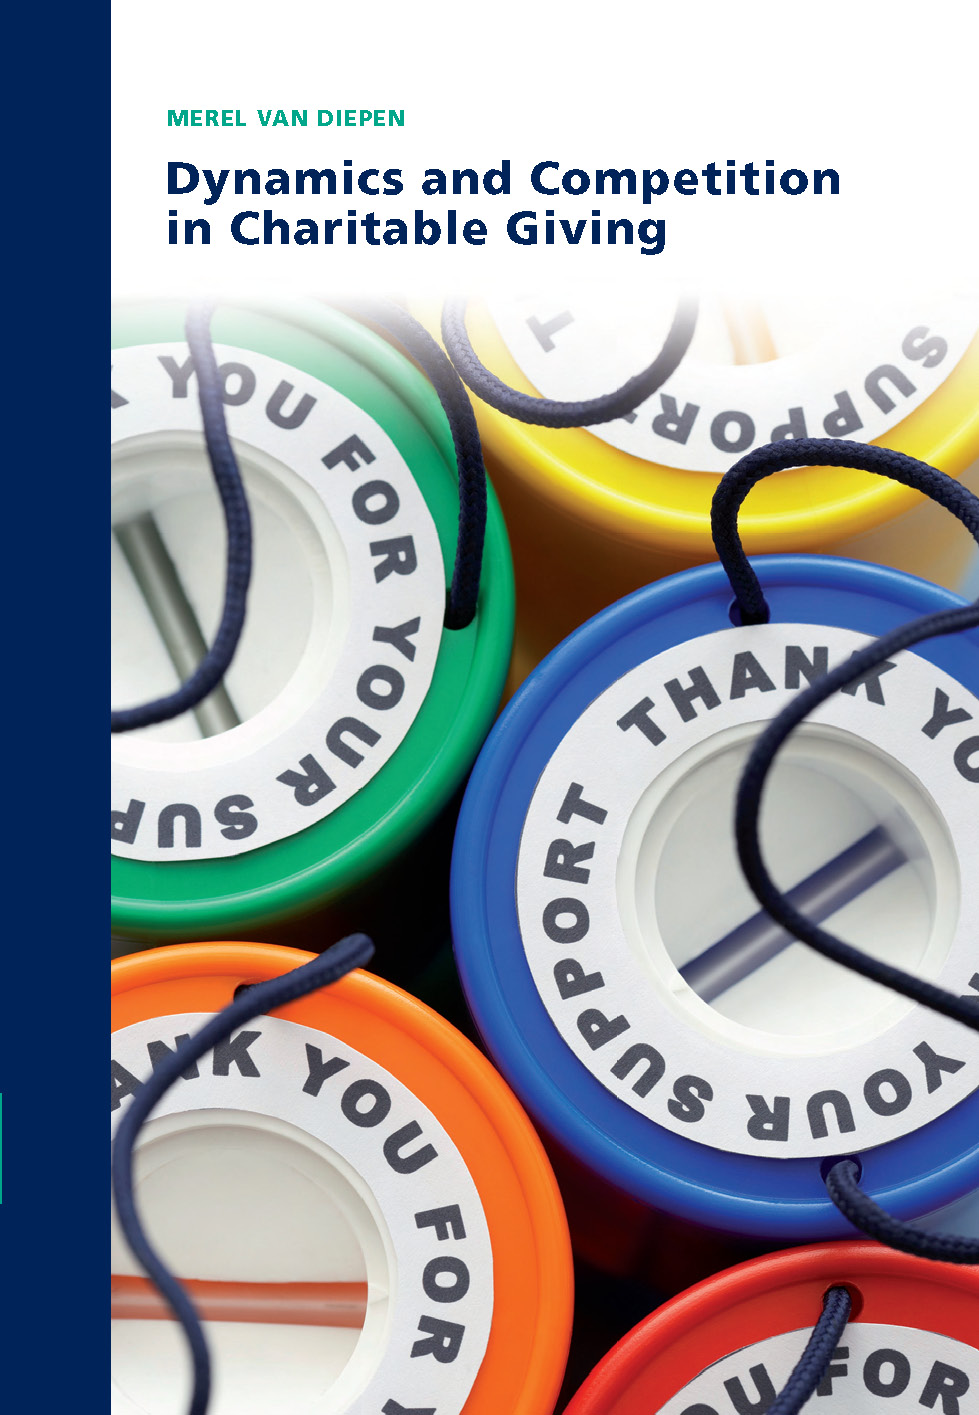 Dynamics and Competition in Charitable Giving